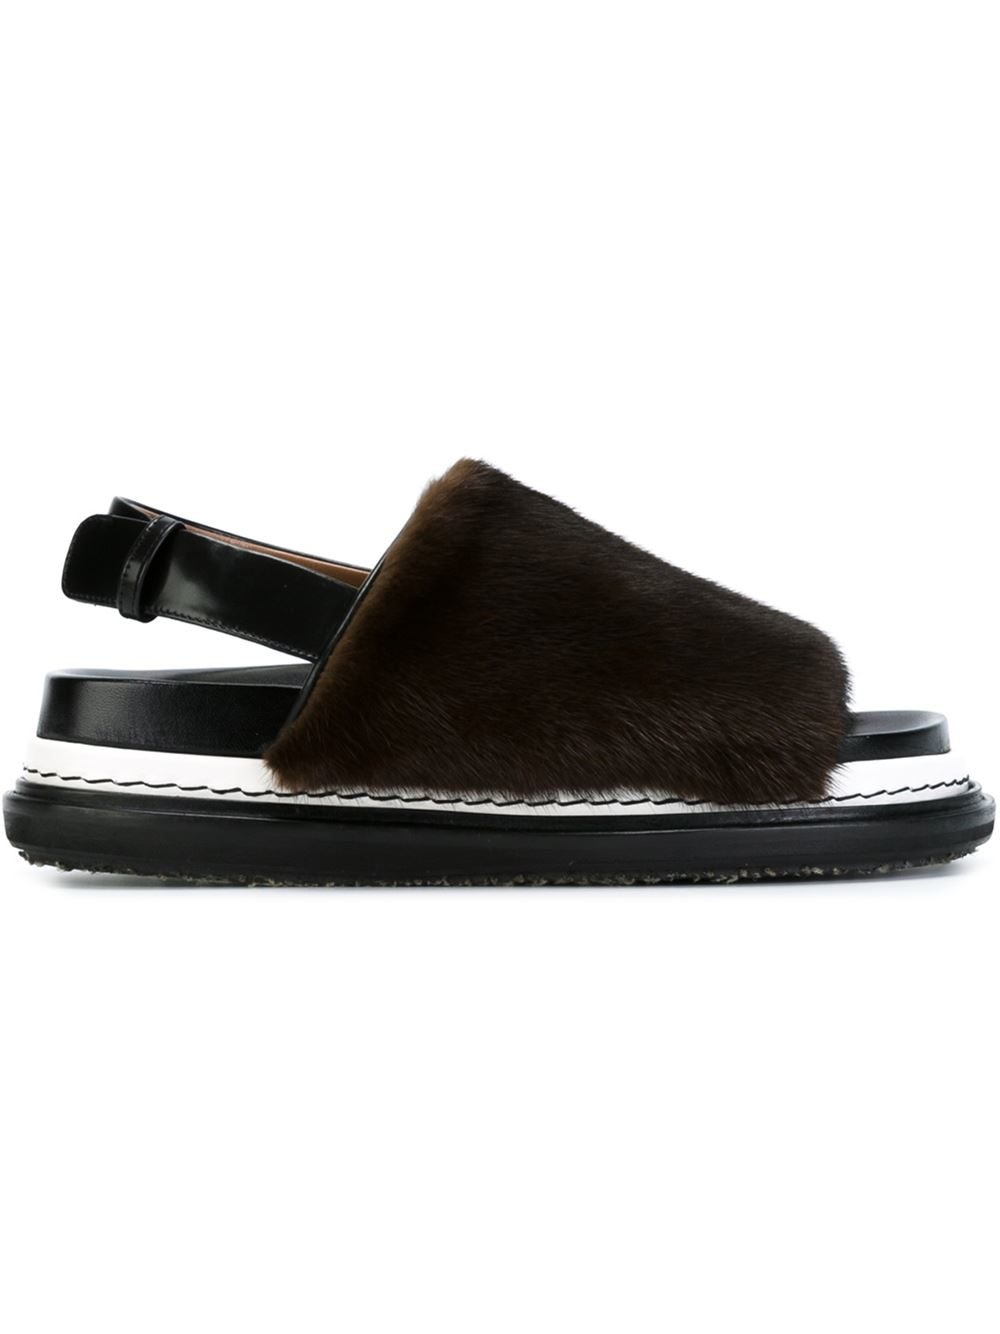 Marni Fur trimmed fussbett sandals Buy Cheap Many Kinds Of Buy Cheap Best For Sale 2018 To Buy Limited Edition Sale Online Bl4oQgAB